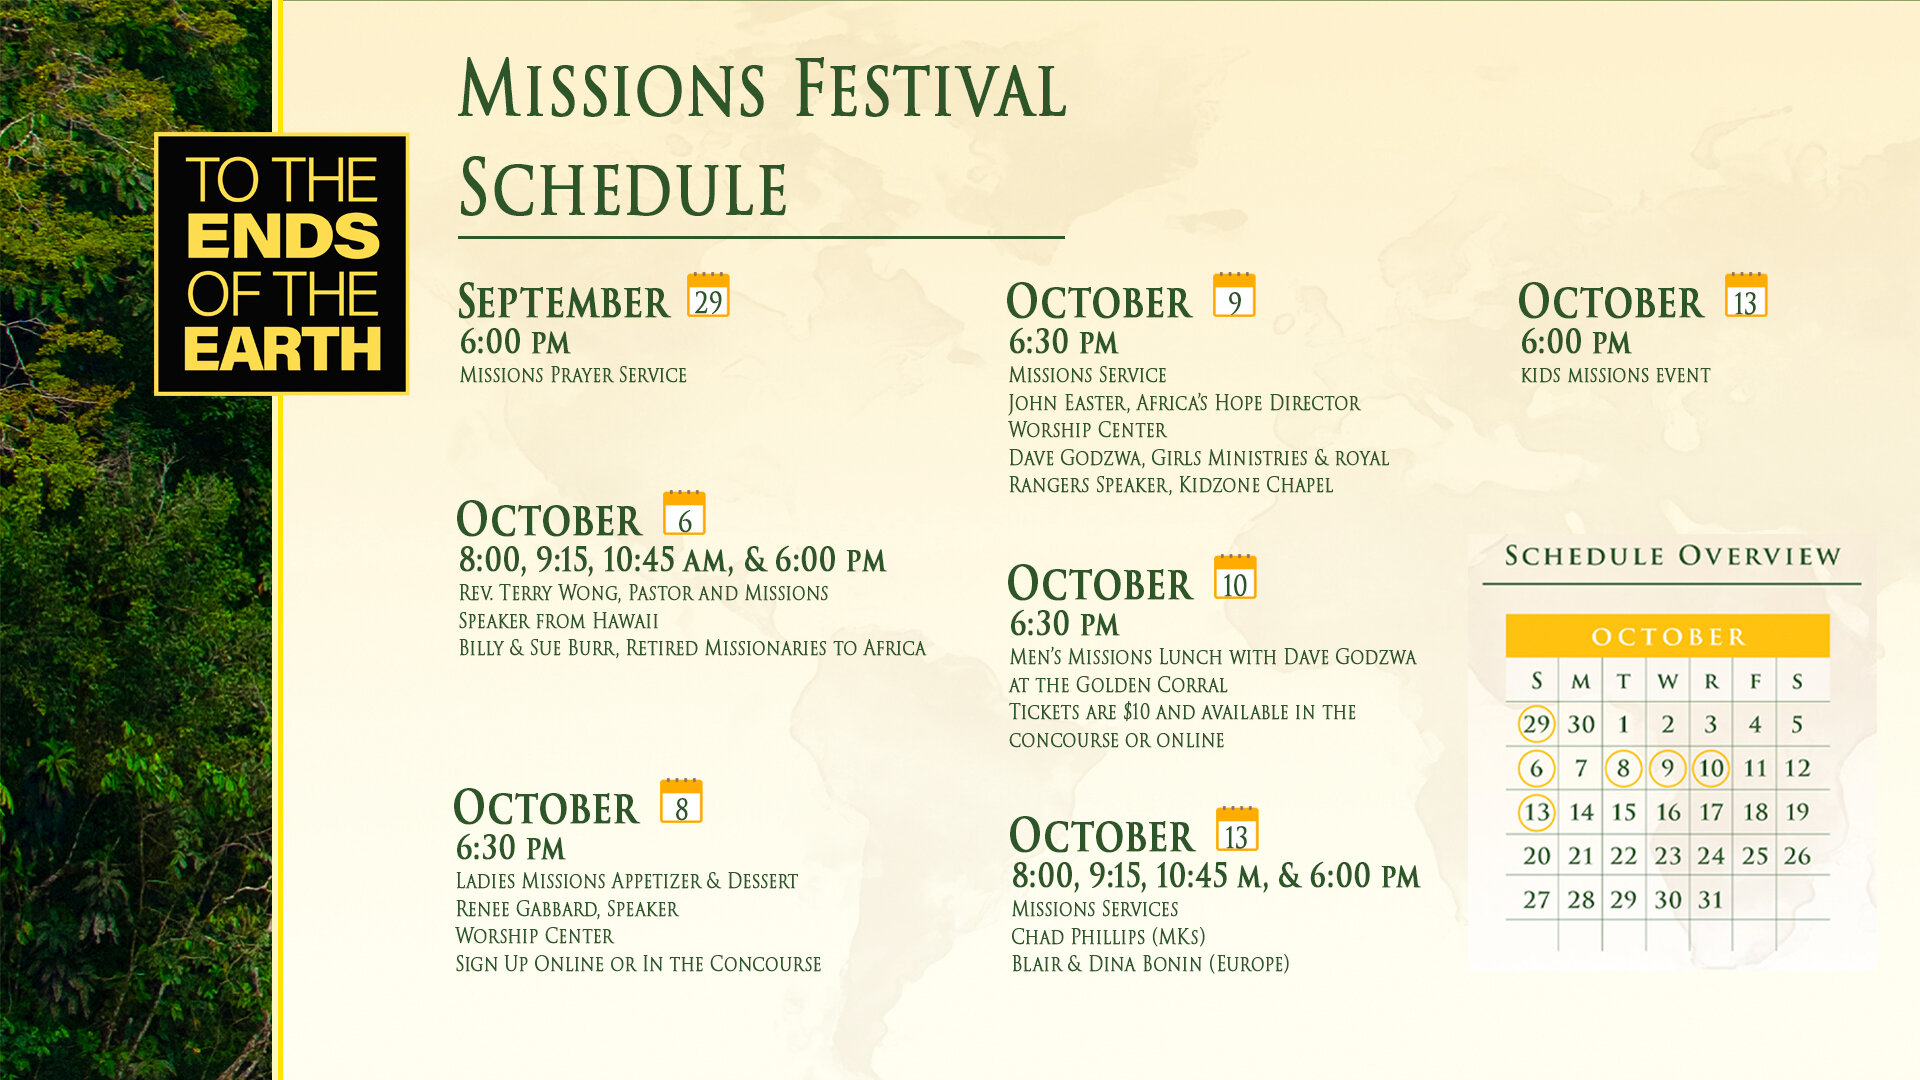 Missions Festival Schedule.jpg